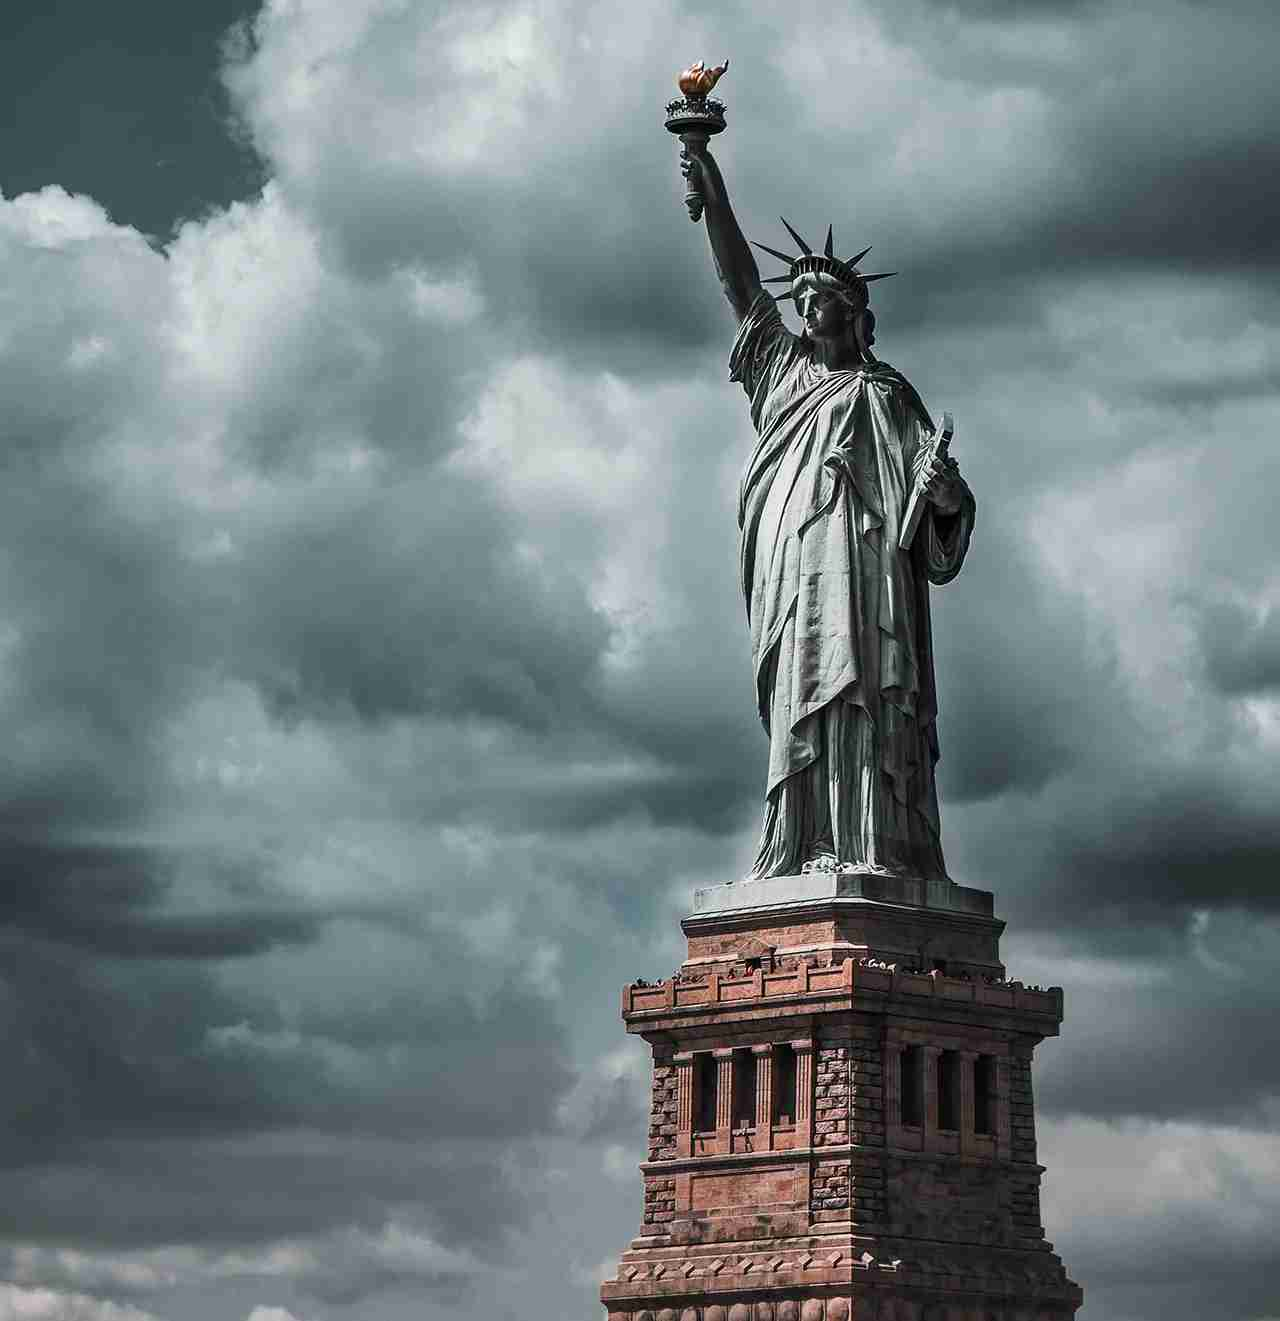 Statue of Liberty in New York. (Photo by Julius Drost on Unsplash)